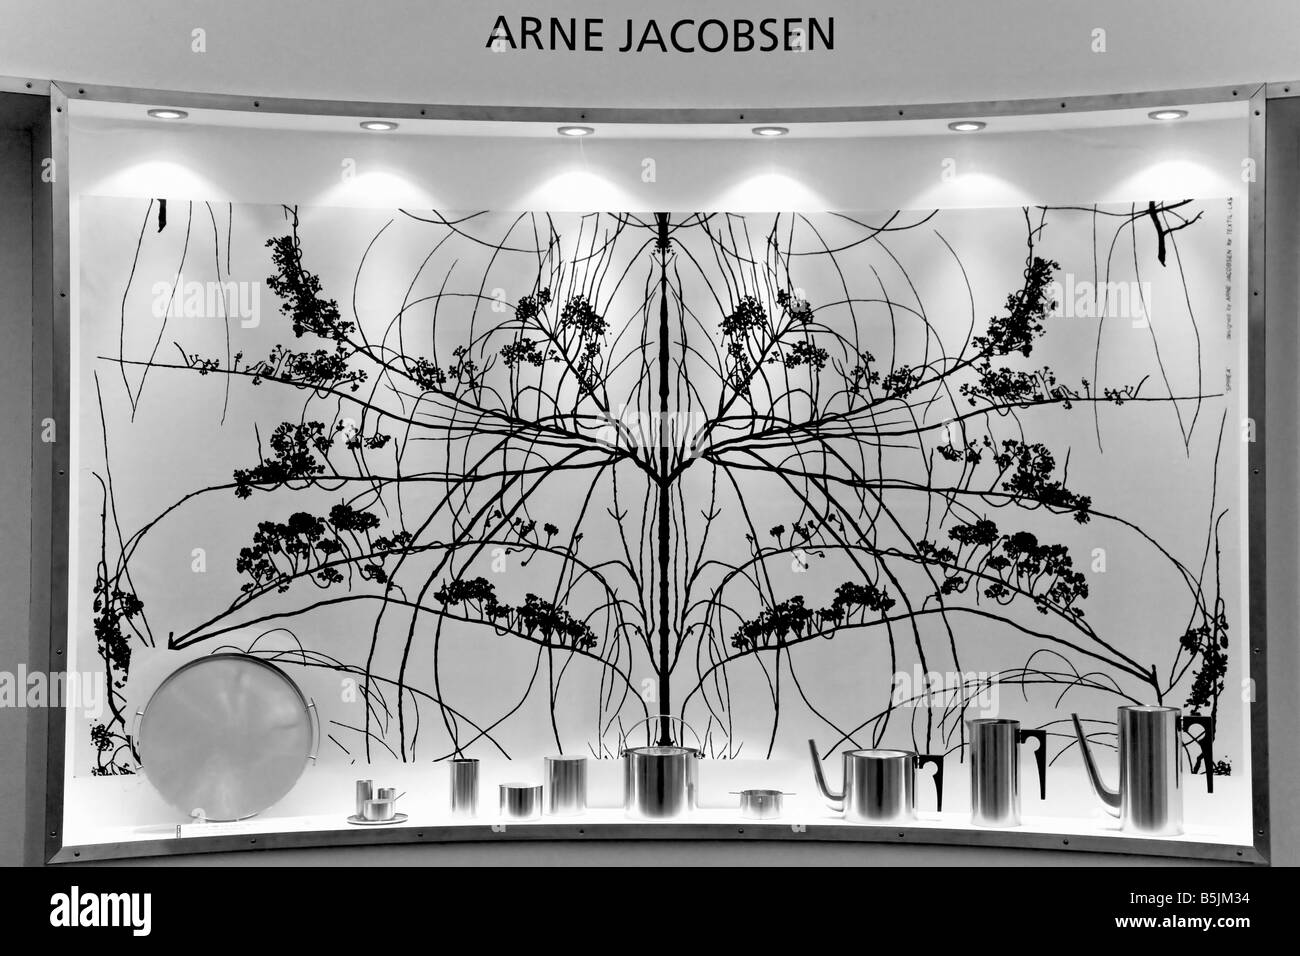 Arne Jacobsens display of stainless kitchen equipment - Stock Image